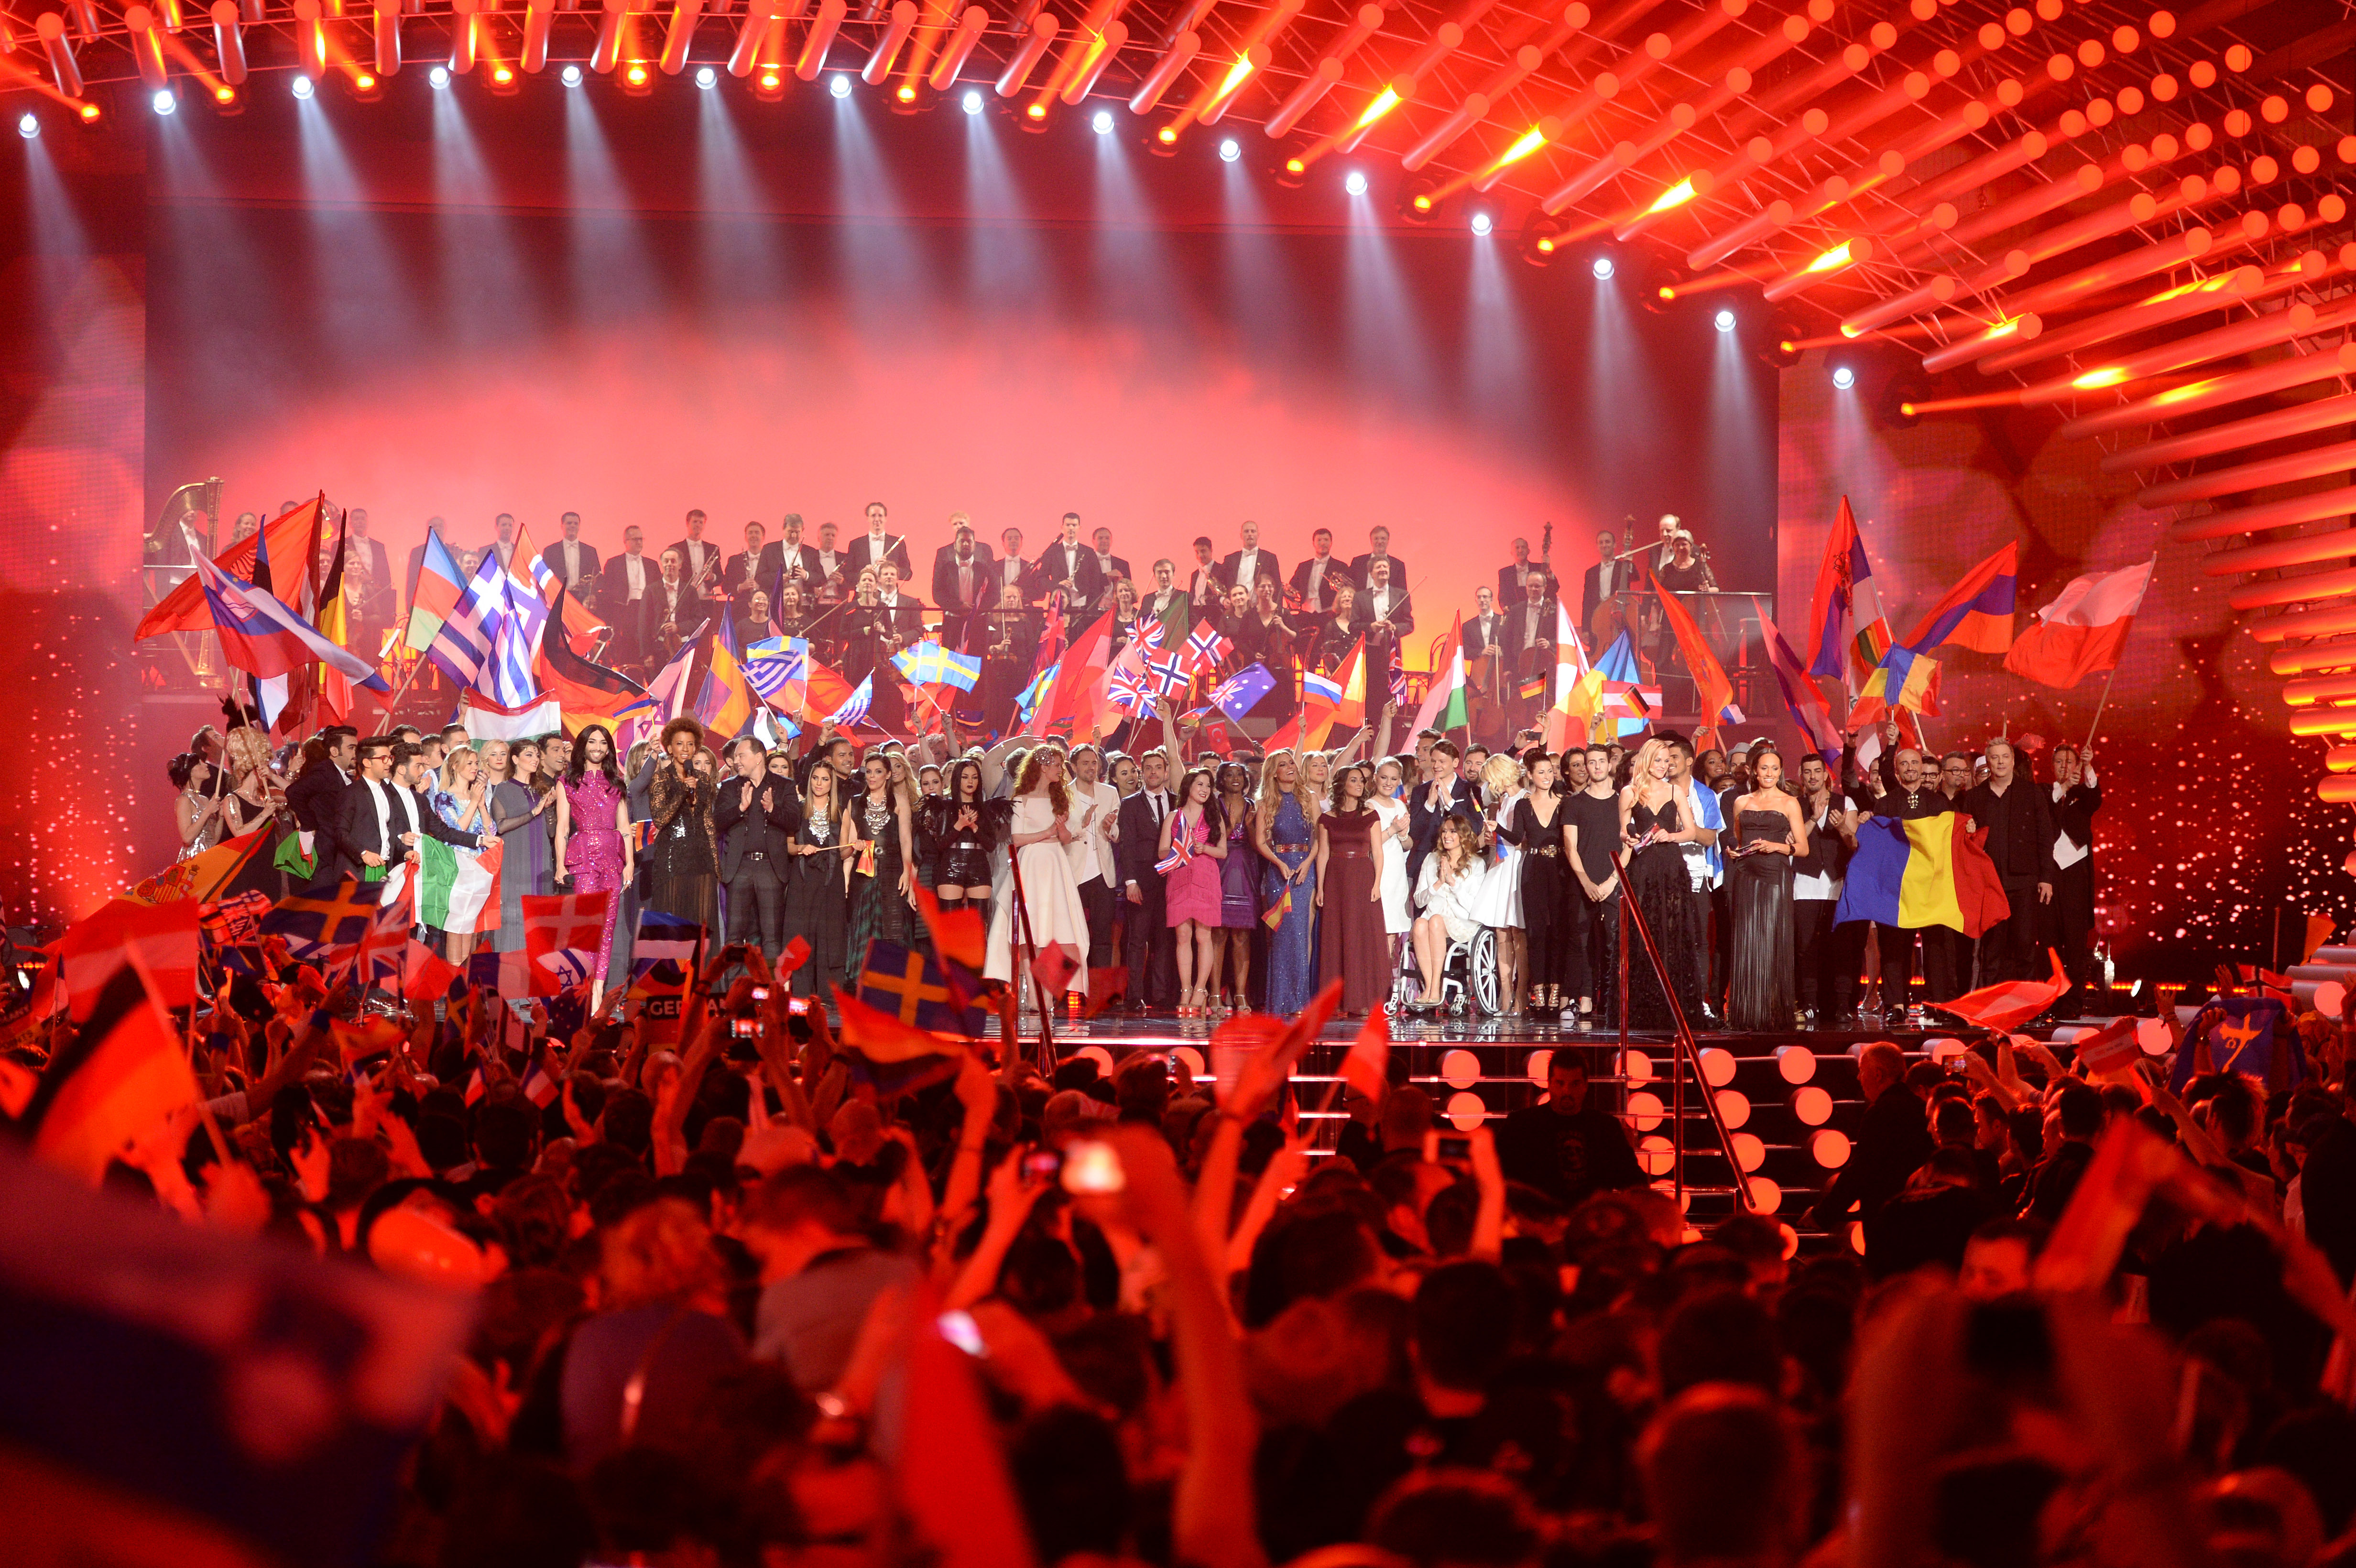 All participants stand on stage during the final of the Eurovision Song Contest 2015 on May 23, 2015 in Vienna, Austria.